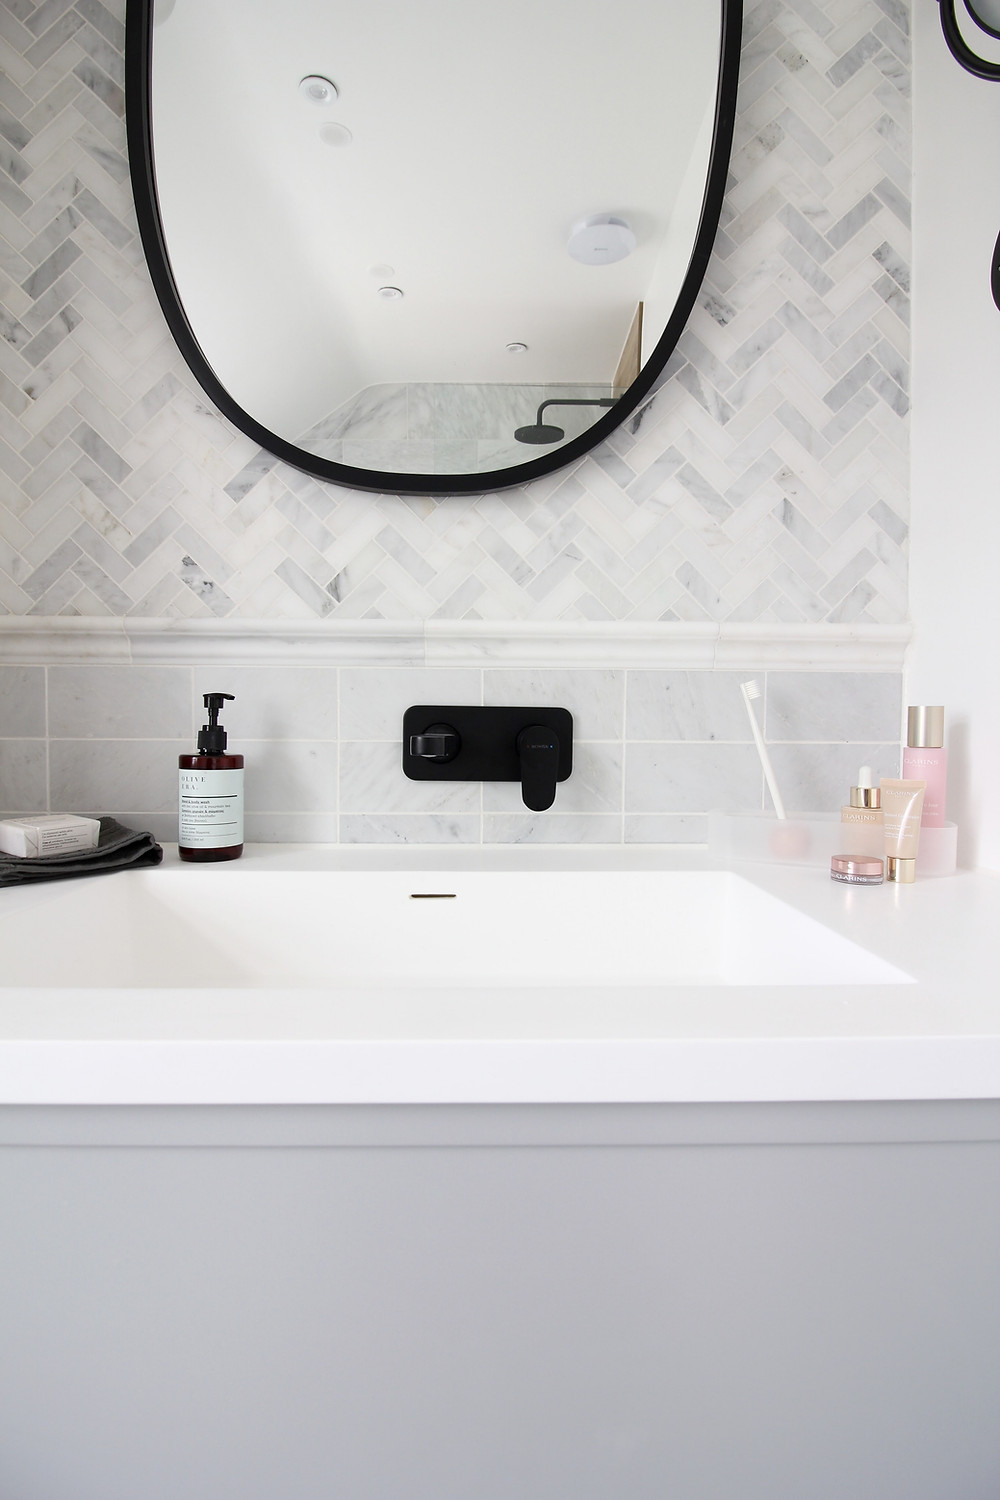 Methven Breeze wall mounted black basin mixer, marble herringbone mosaic and marble metro tiles Mandarin Stone, and the Lusso PIANA 1000 vanity with resin Stone sink, UMBRA HUB Oval mirror